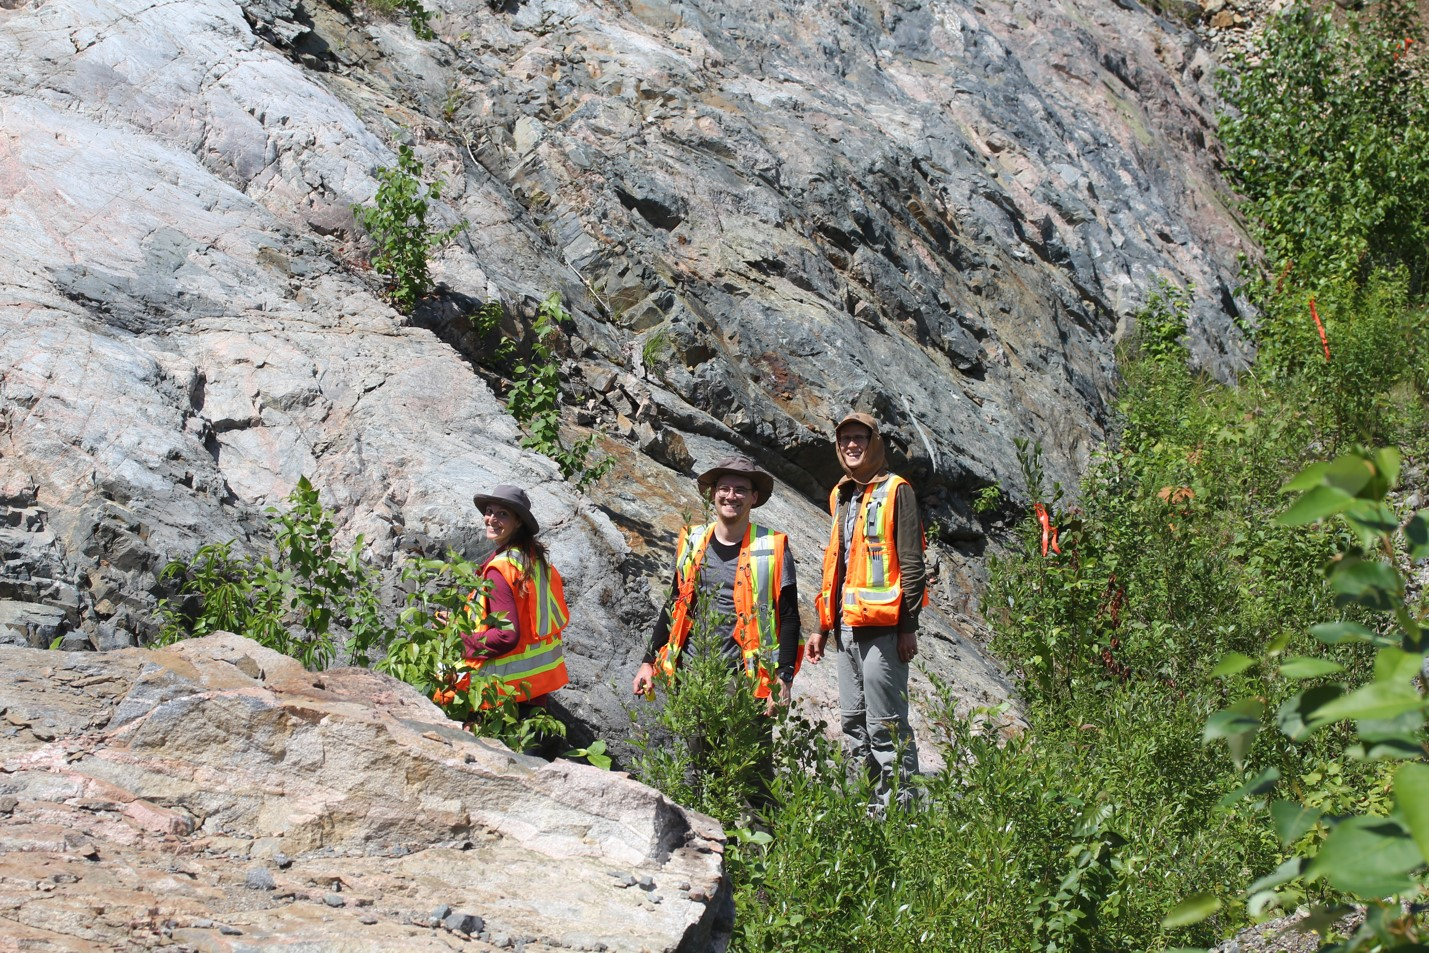 Sandra Baurier Aymat, Henning Seibel, and Dustin Peters in the field in Sudbury (photo by M Lesher)